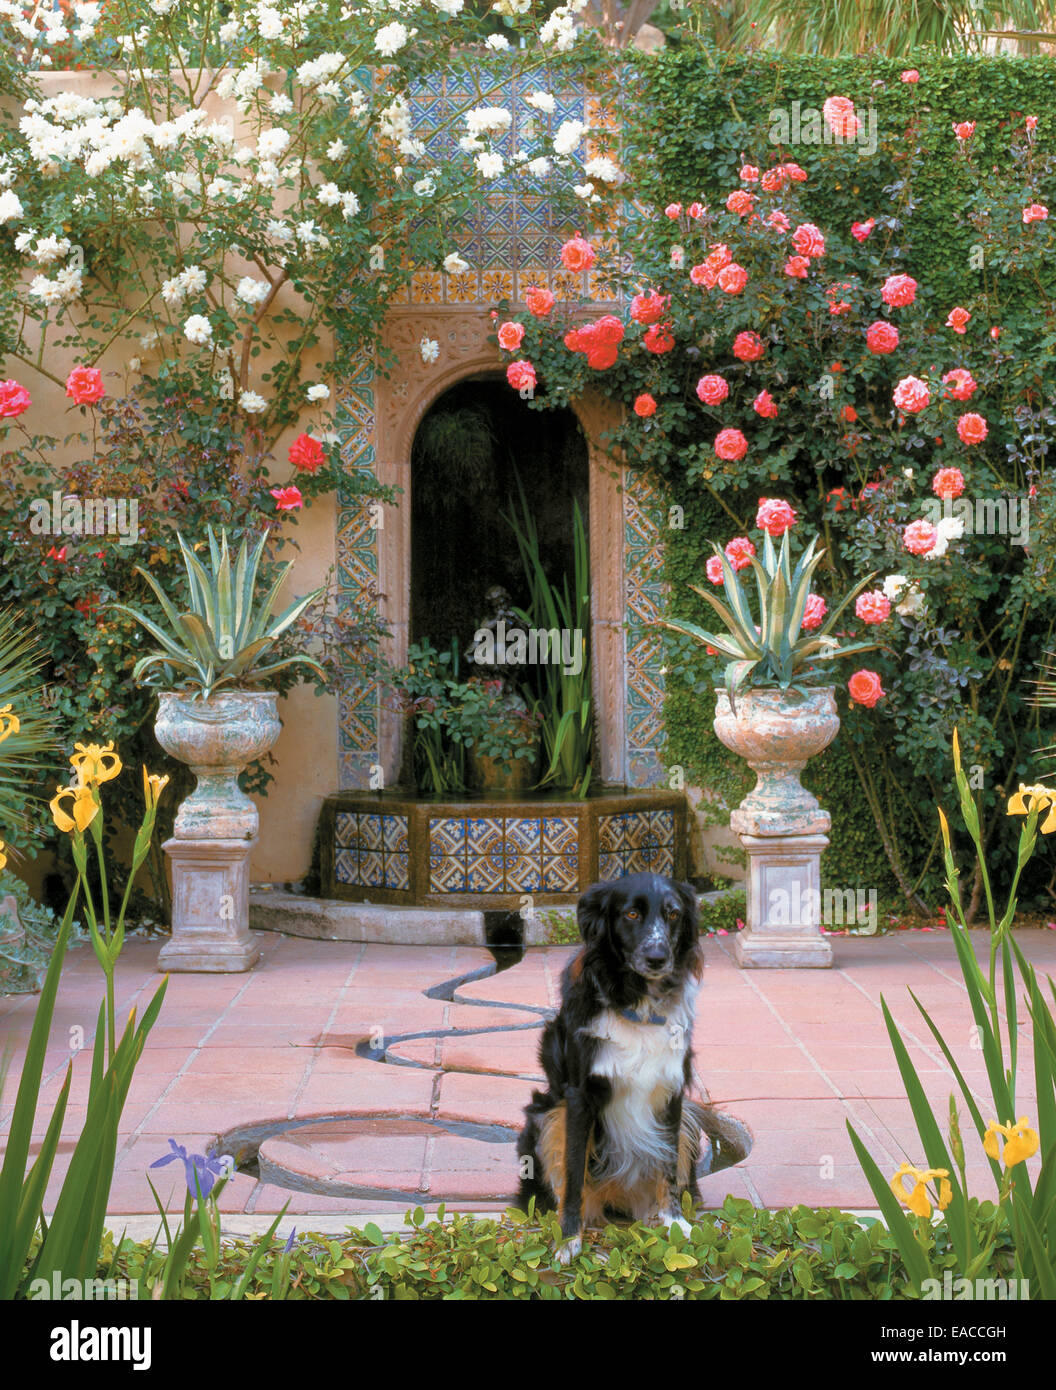 dog in flowering garden - Stock Image